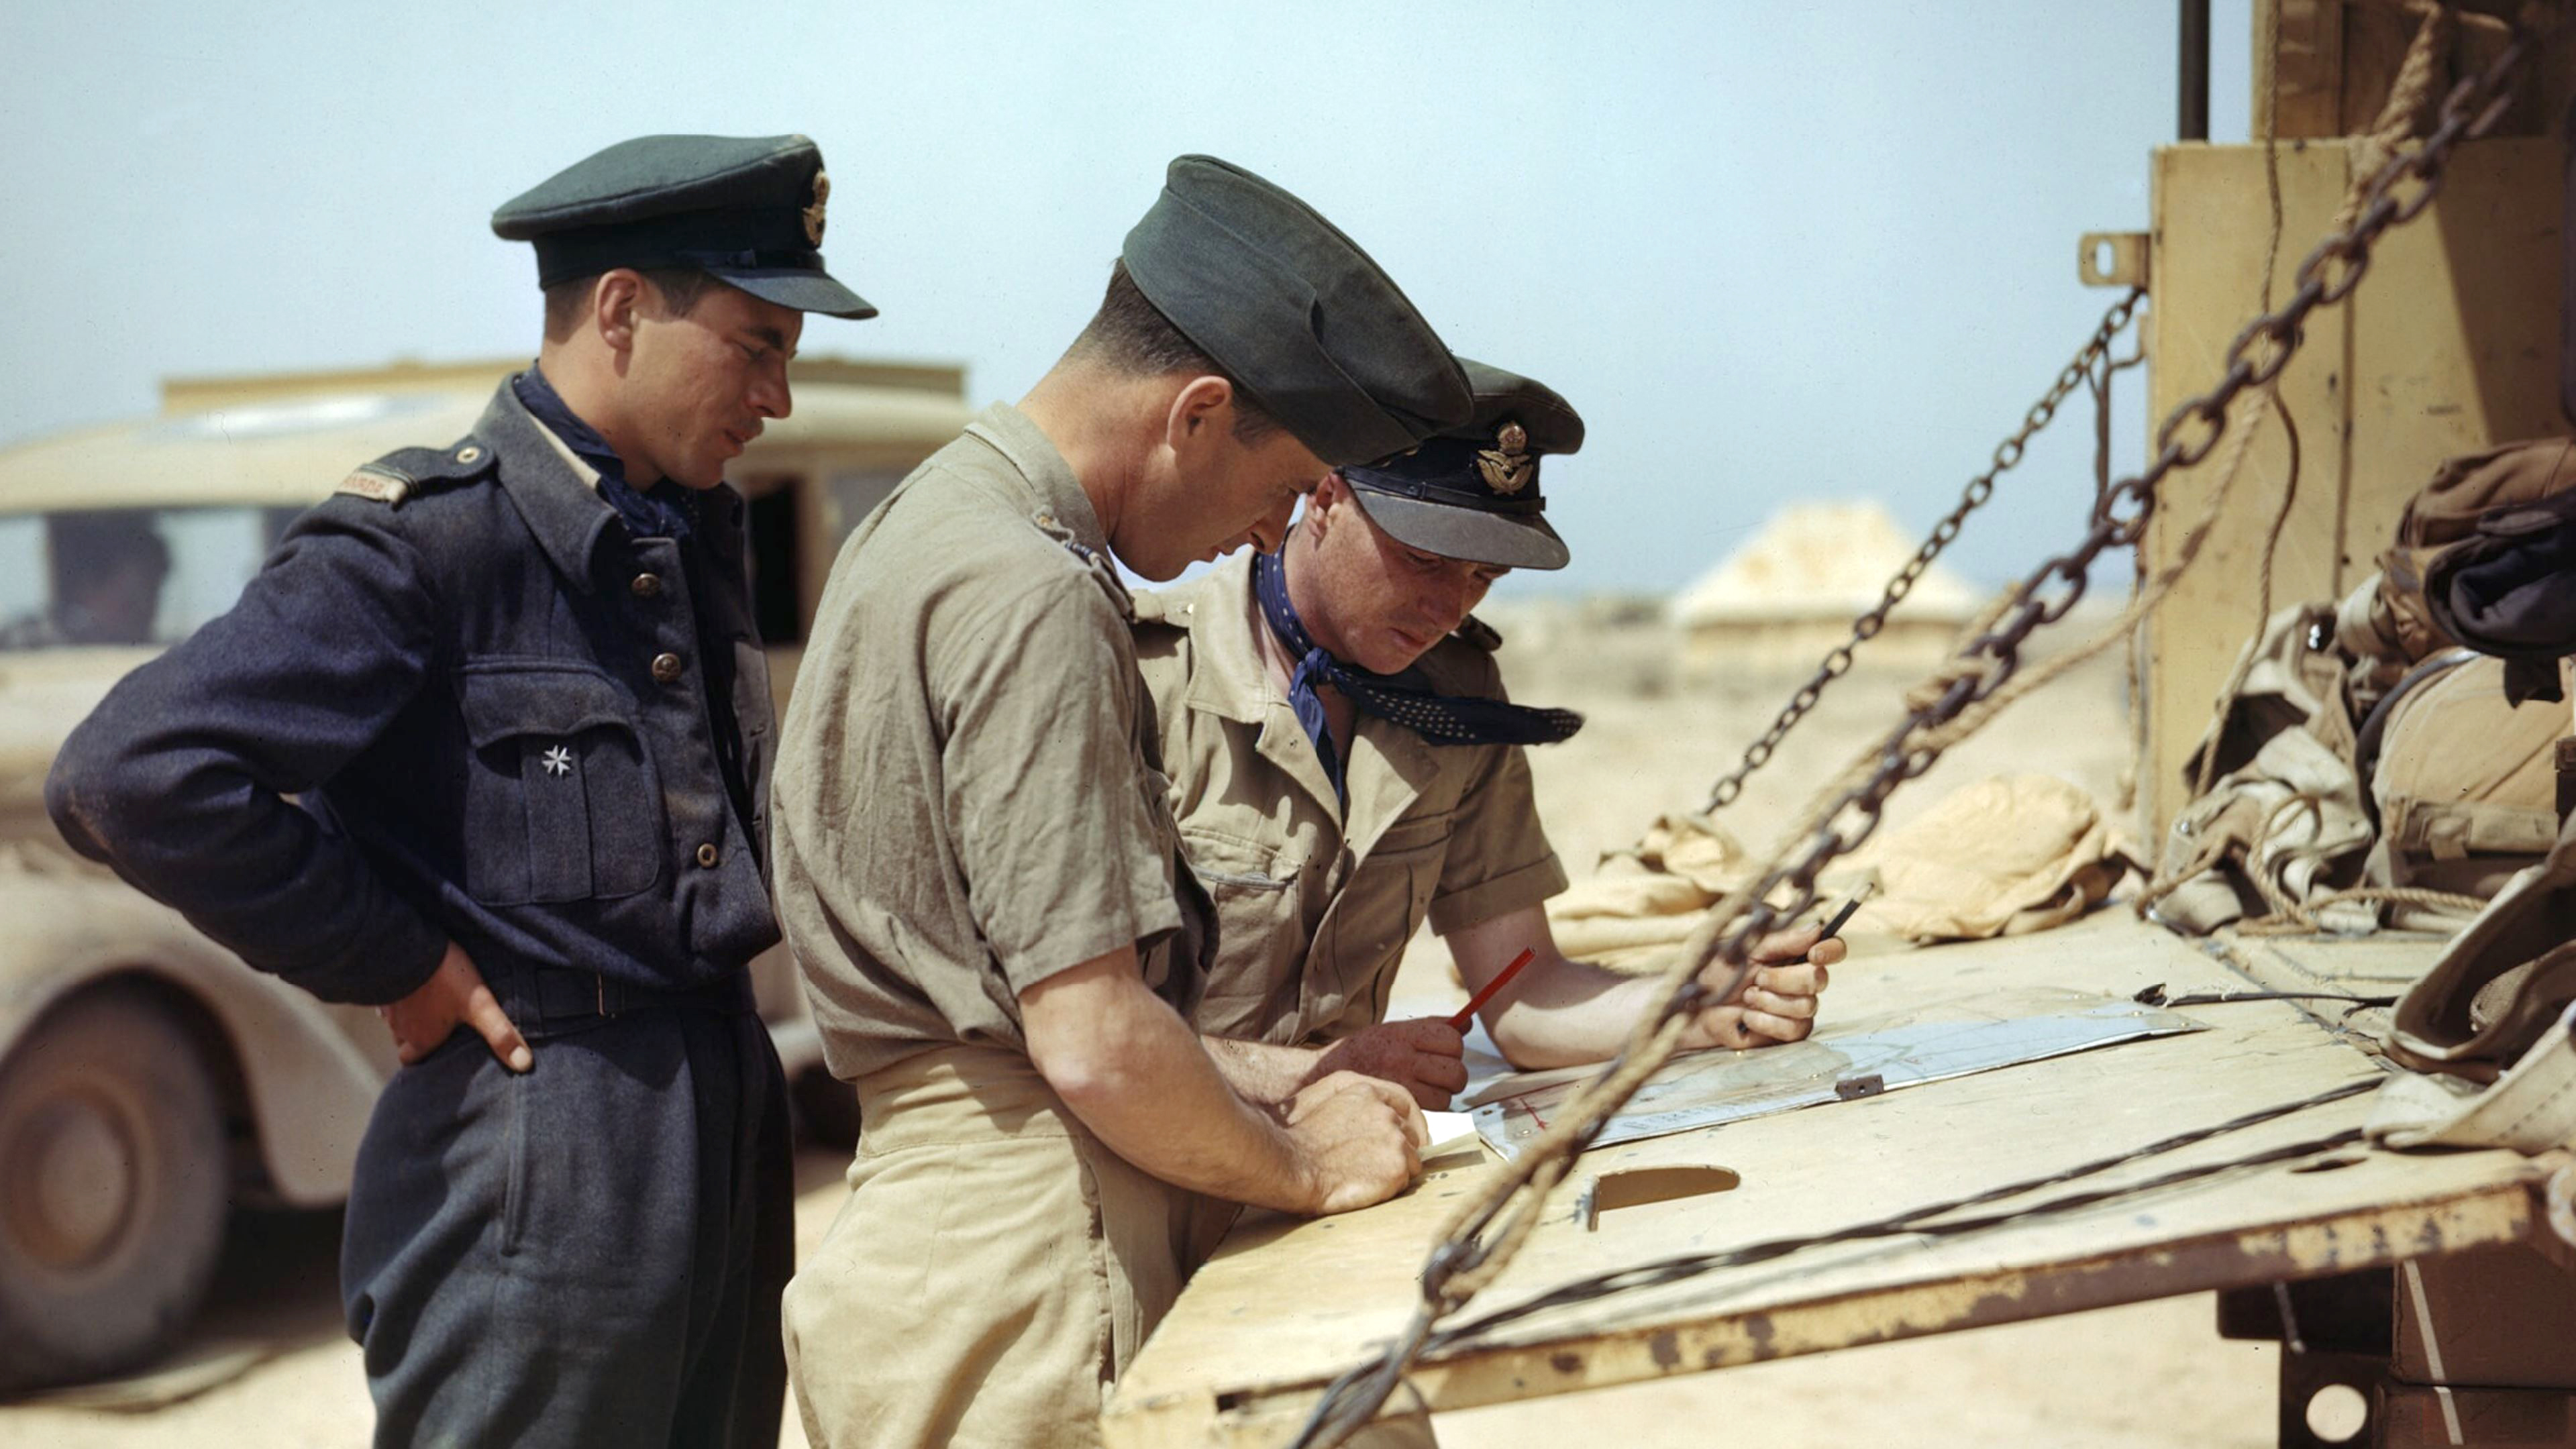 Aircrew RCAF 417Sqn pilots planning another mission Goubrine airfield Tunisia April 1943 IWM TR829a